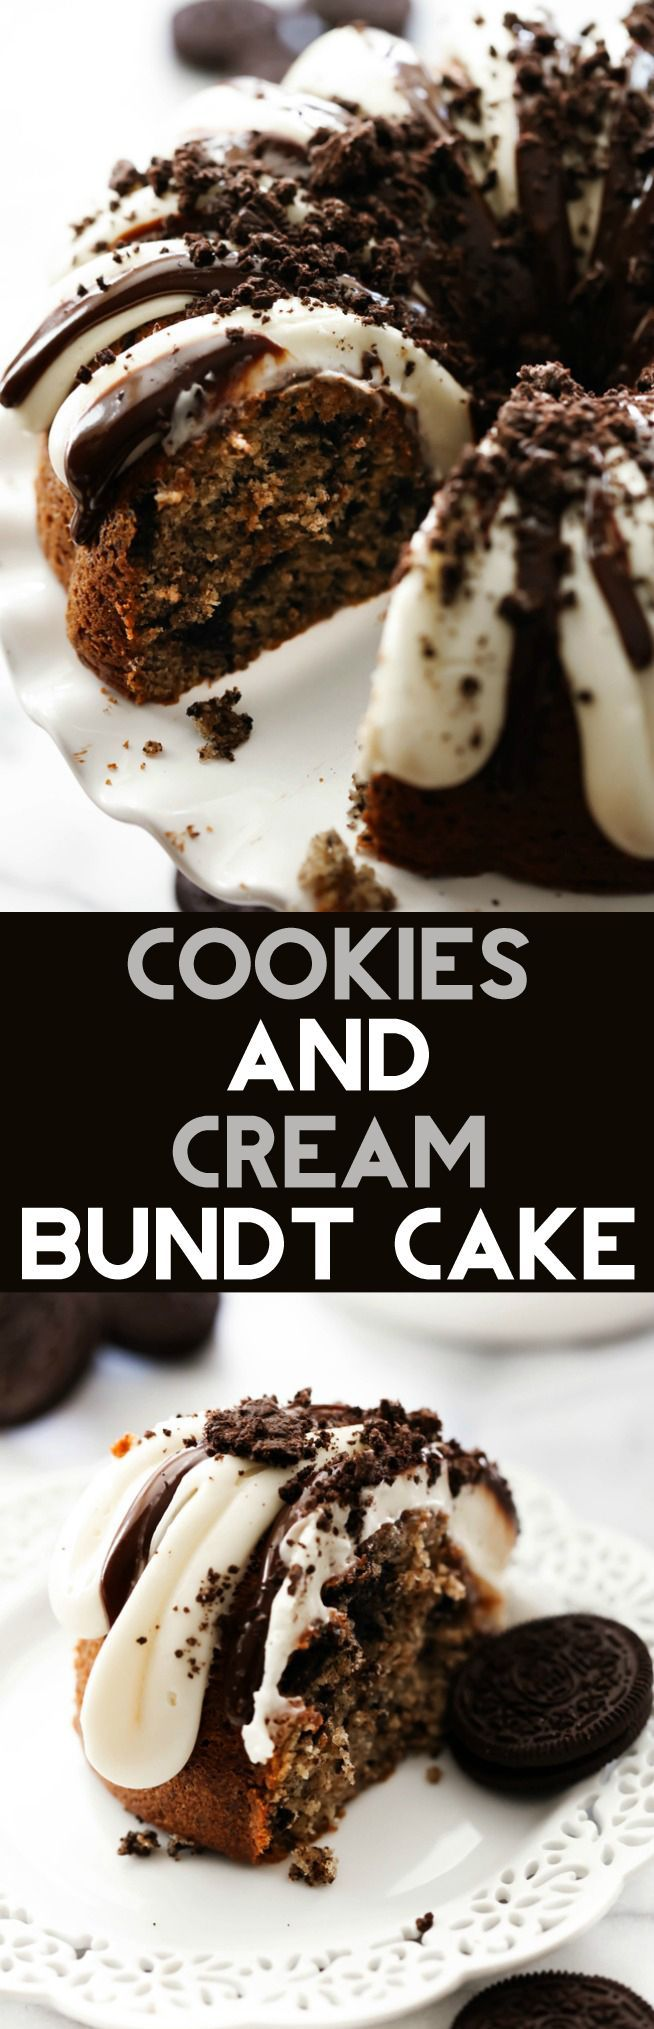 This Cookies and Cream Bundt Cake is divine. It is loaded with Oreo cookies. It is super moist and is topped with cream cheese frosting that compliments the chocolate cake perfectly!